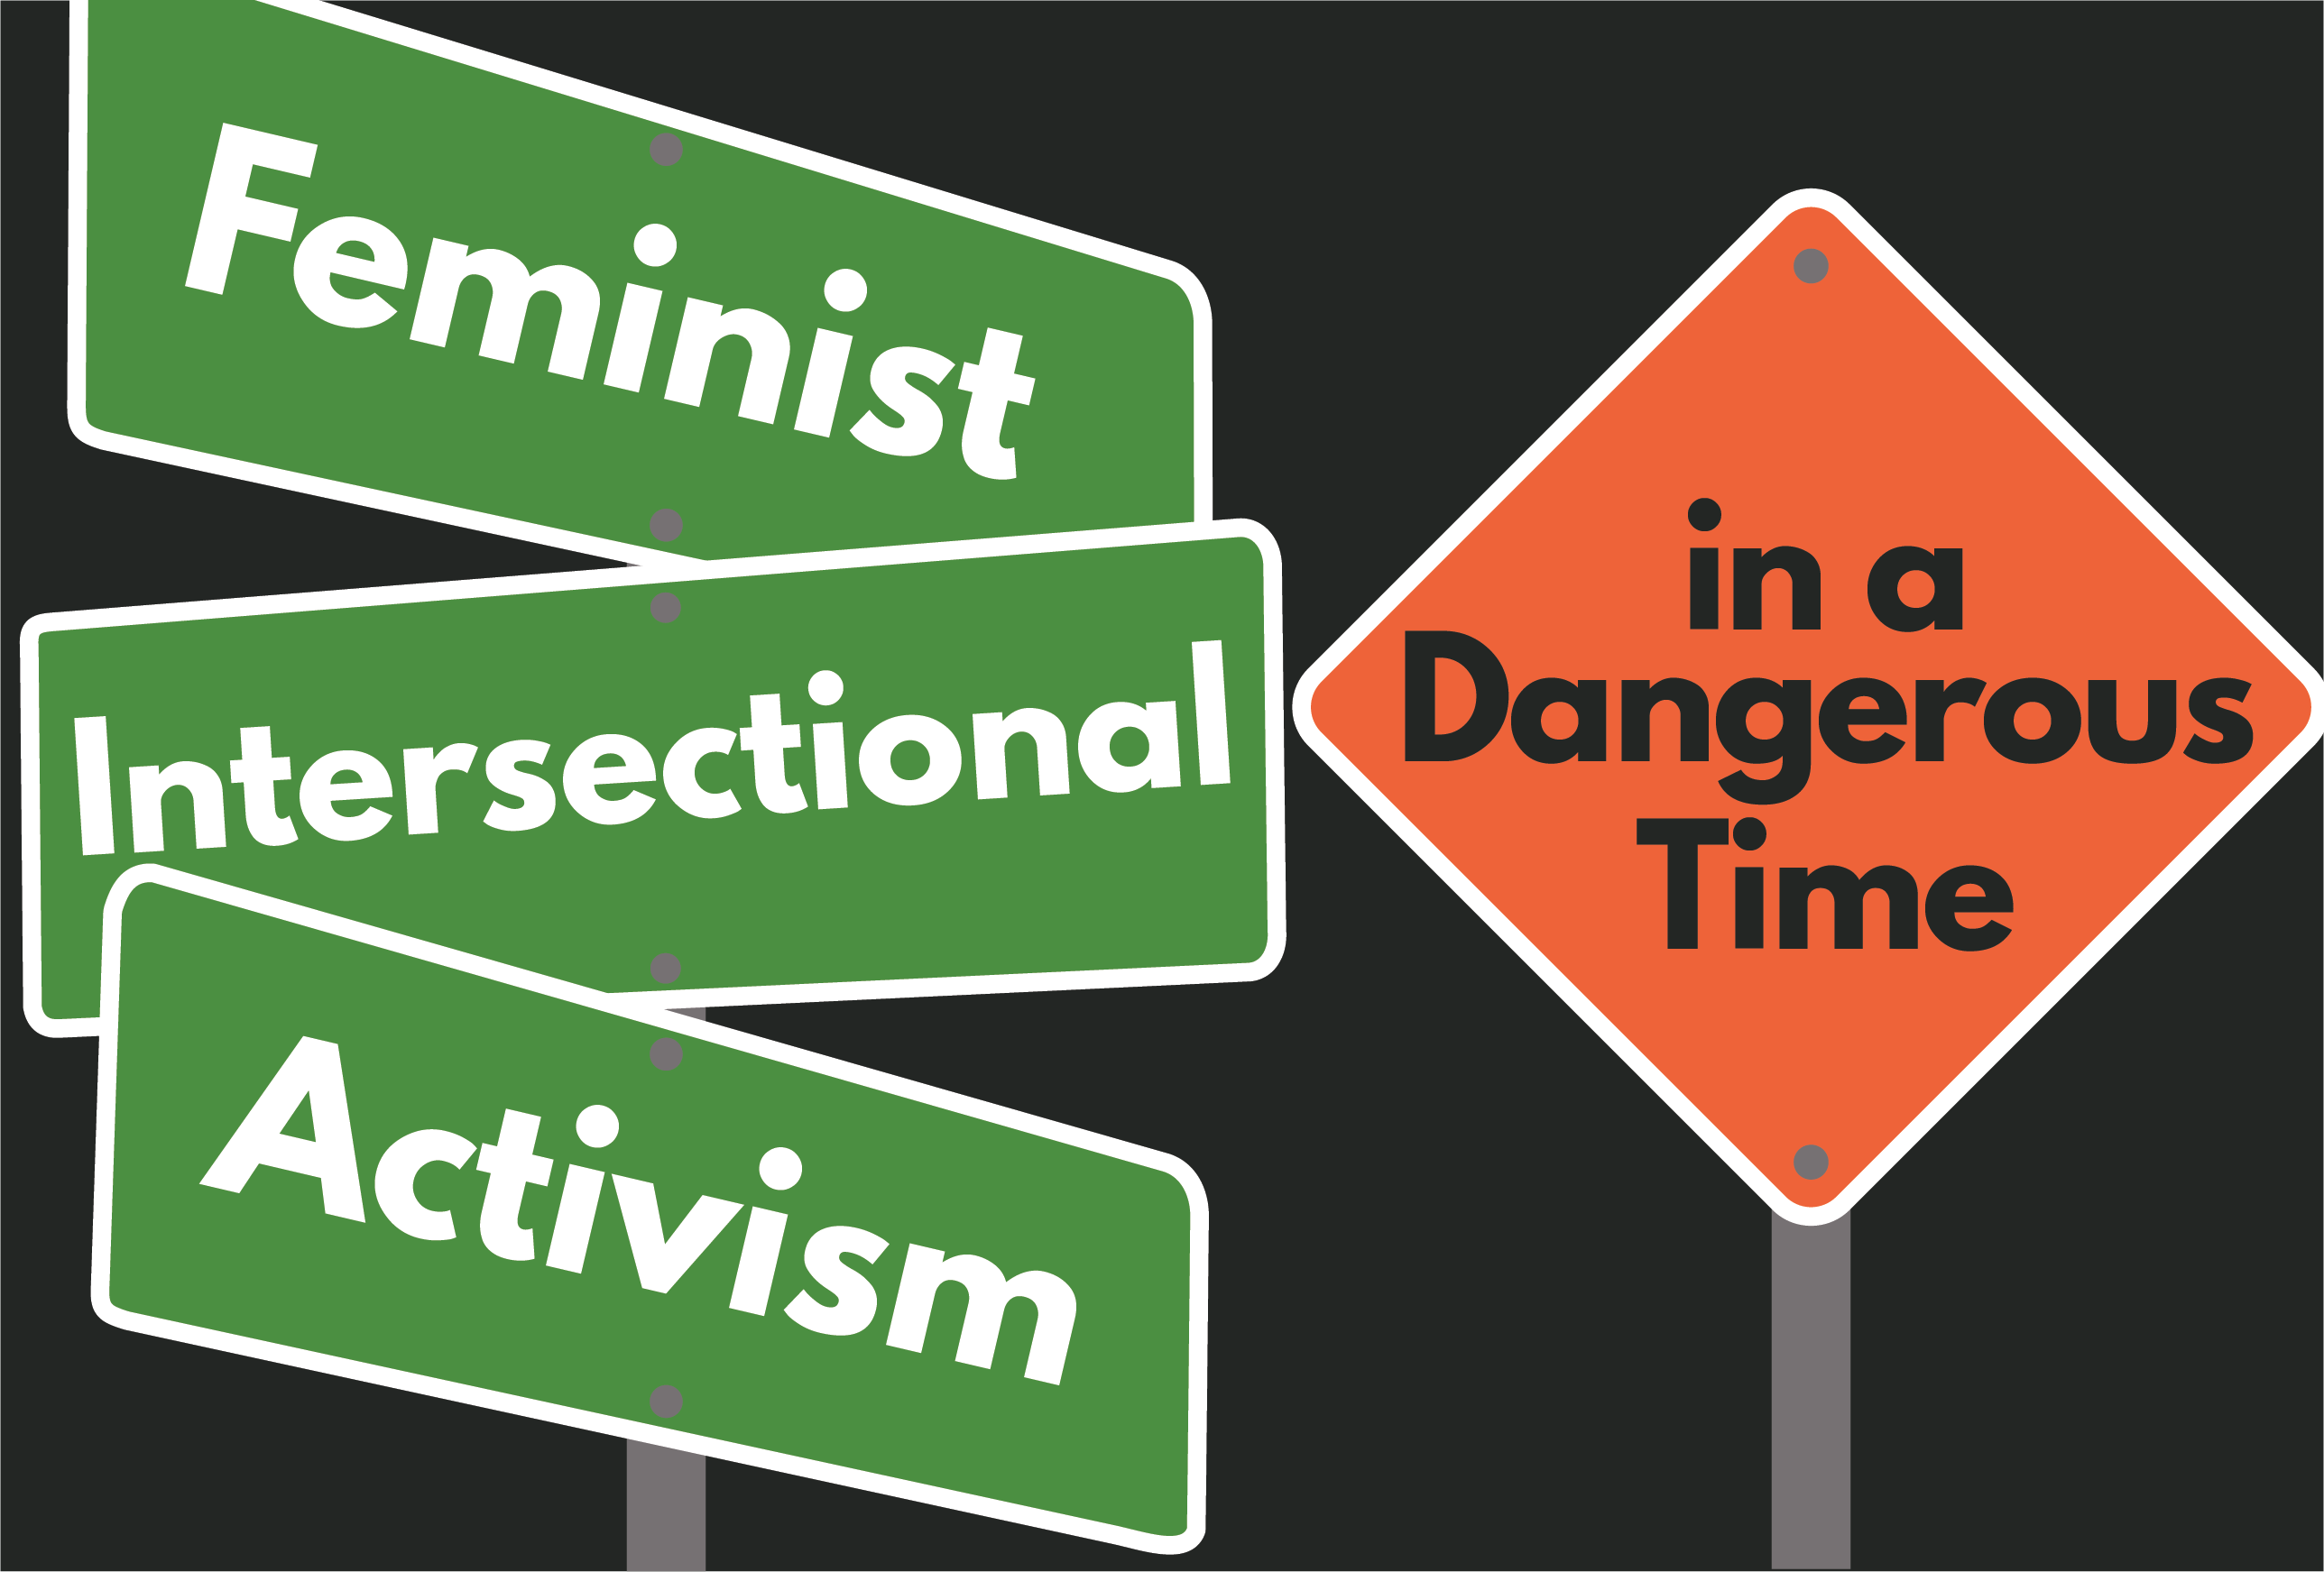 Feminist Intersectional Activism